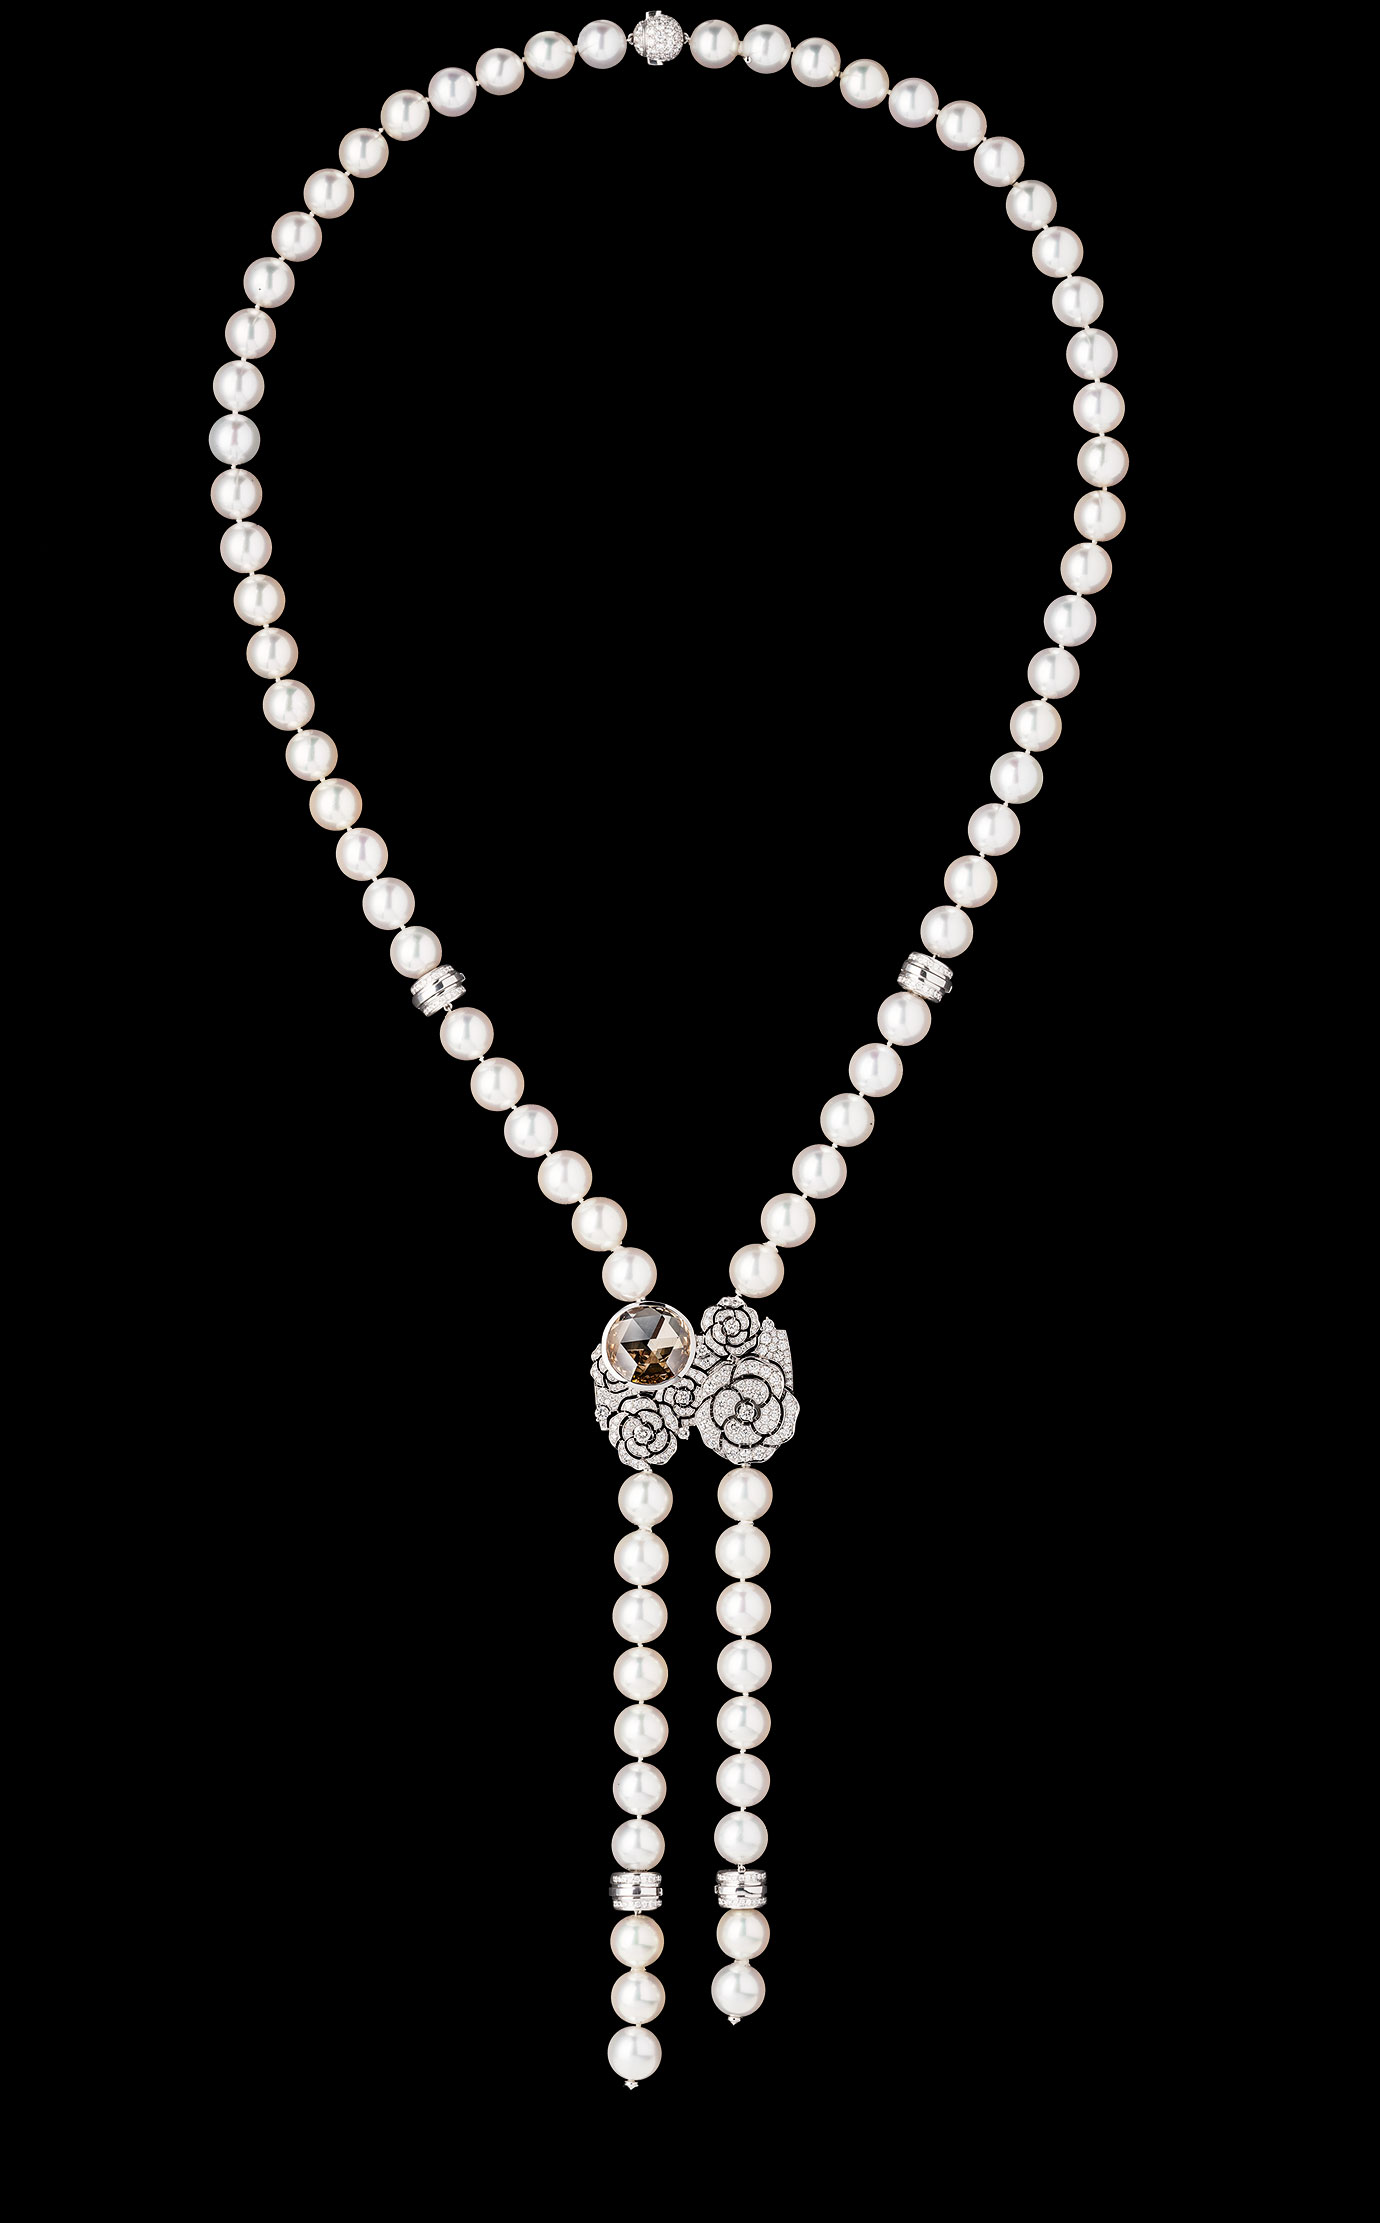 """""""Camélia"""" Watch. In the center of this pearl sautoir, which can also be worn as a bracelet, there is a watch dial concealed behind a bouquet of camellias. 18K white gold set with 503 diamonds, including one 10-carat Fancy Brown Yellow diamond. locale_link - Necklace"""